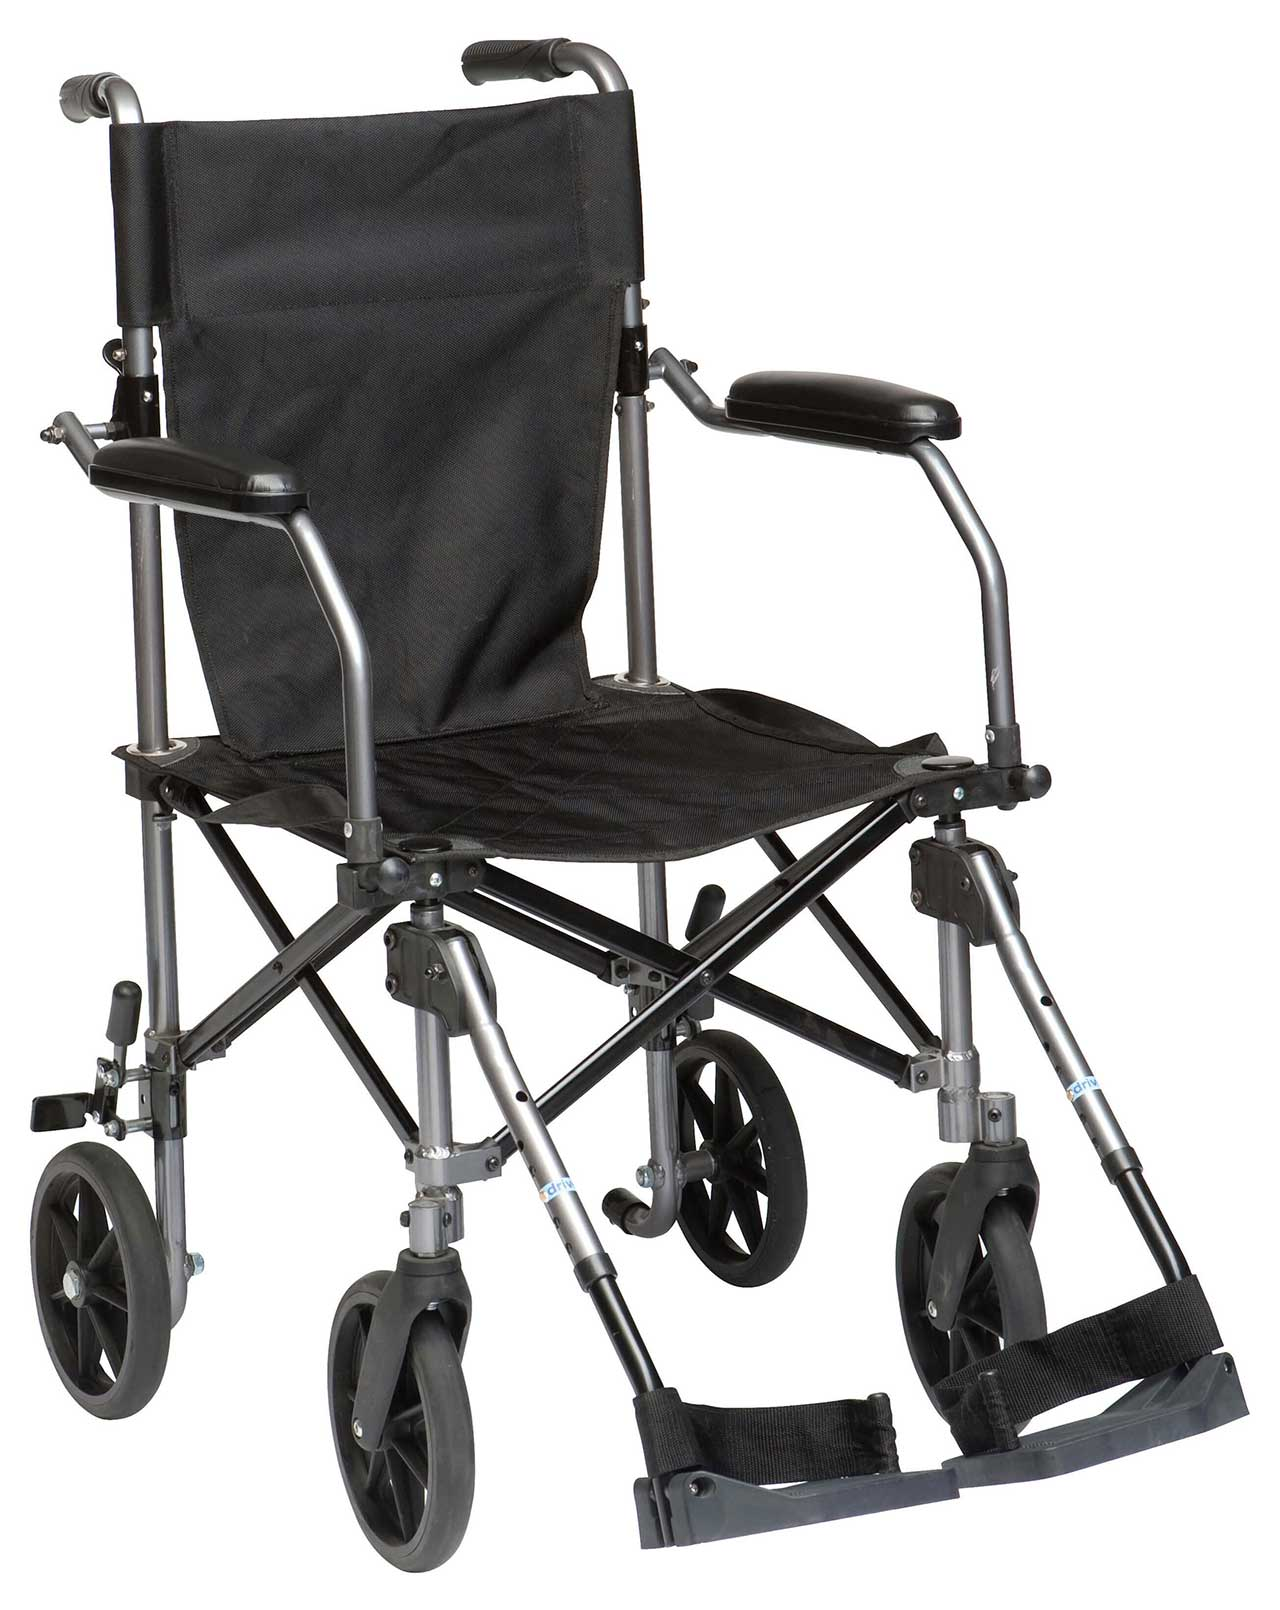 Adult Wheelchair hire £10 00 per week Next Day Delivery No Deposit